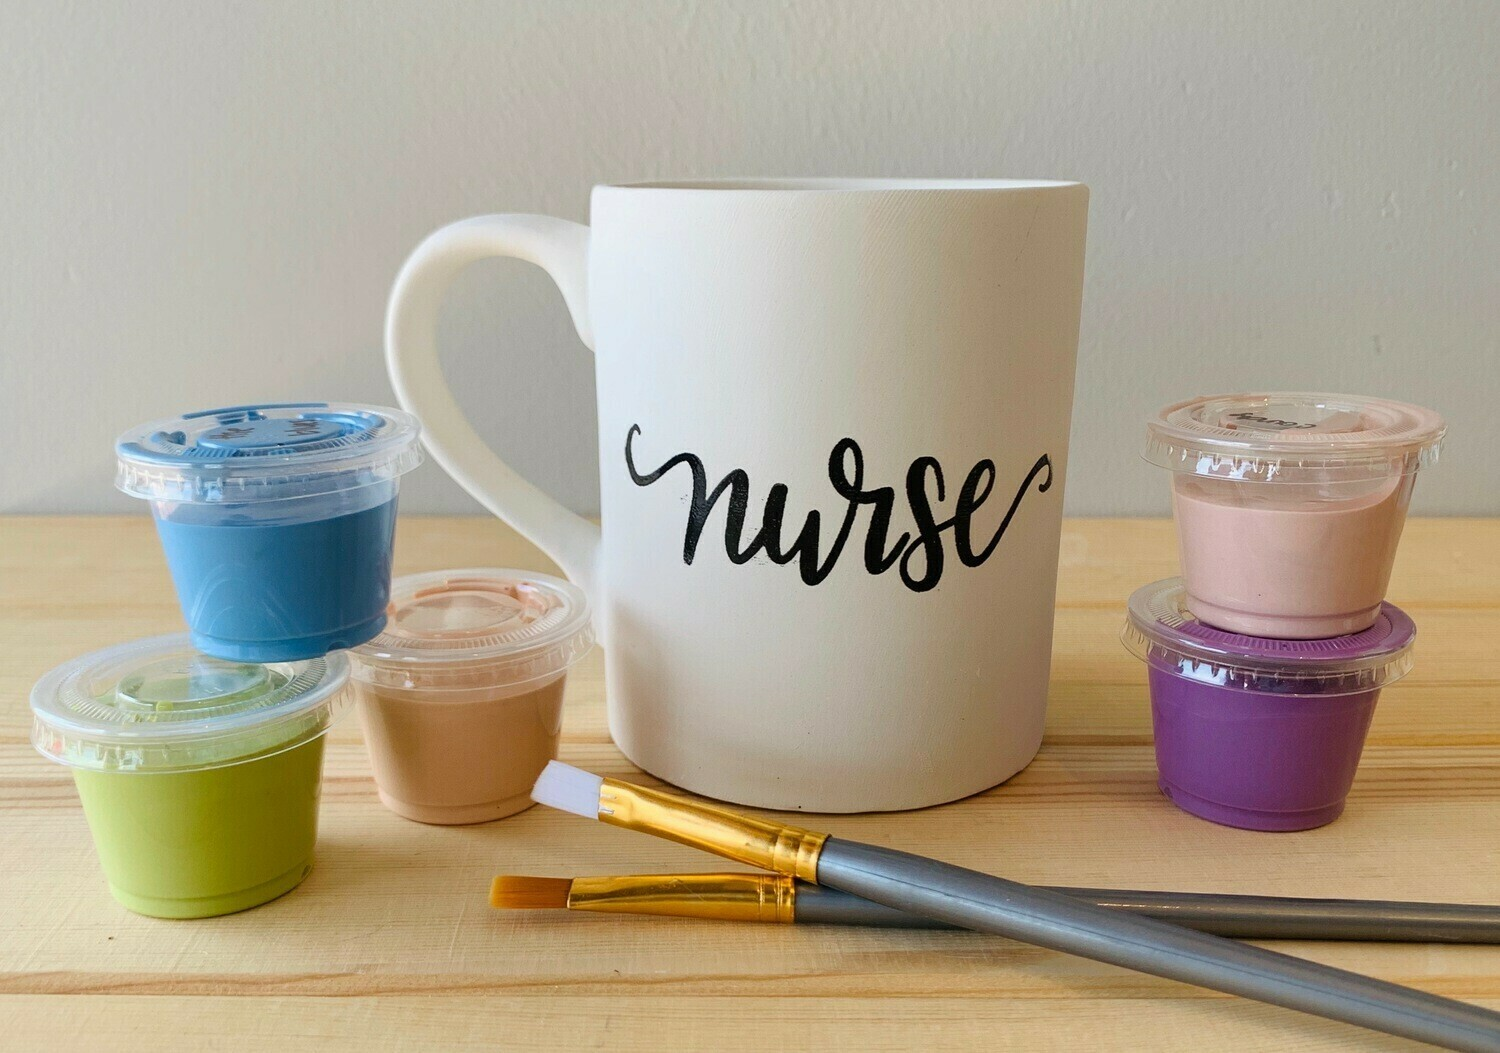 Take Home Coloring Book 12 oz Nurse Definition Mug with Glazes - Pick up Curbside